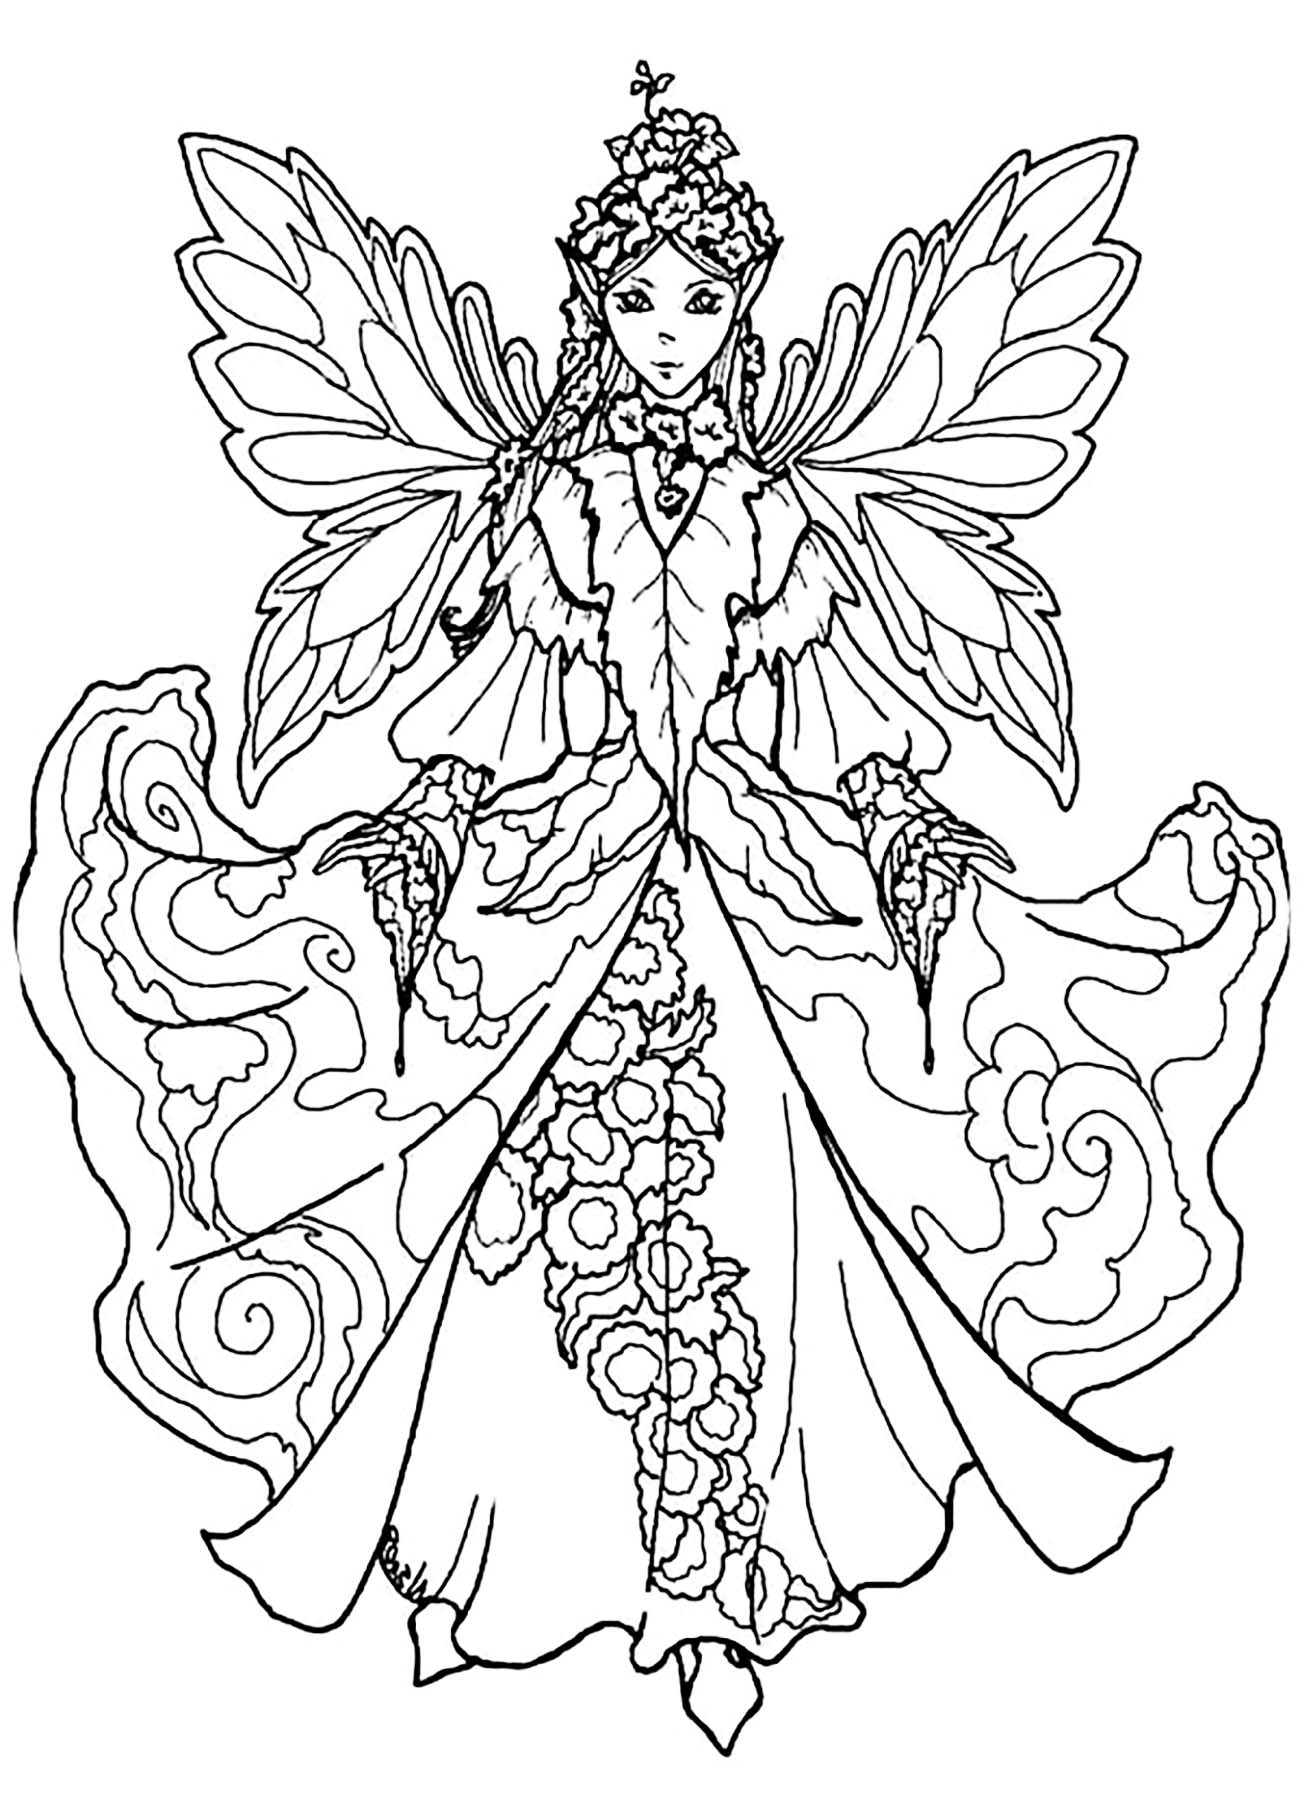 coloring fairies for kids fairy coloring pages for adults best coloring pages for kids kids fairies coloring for